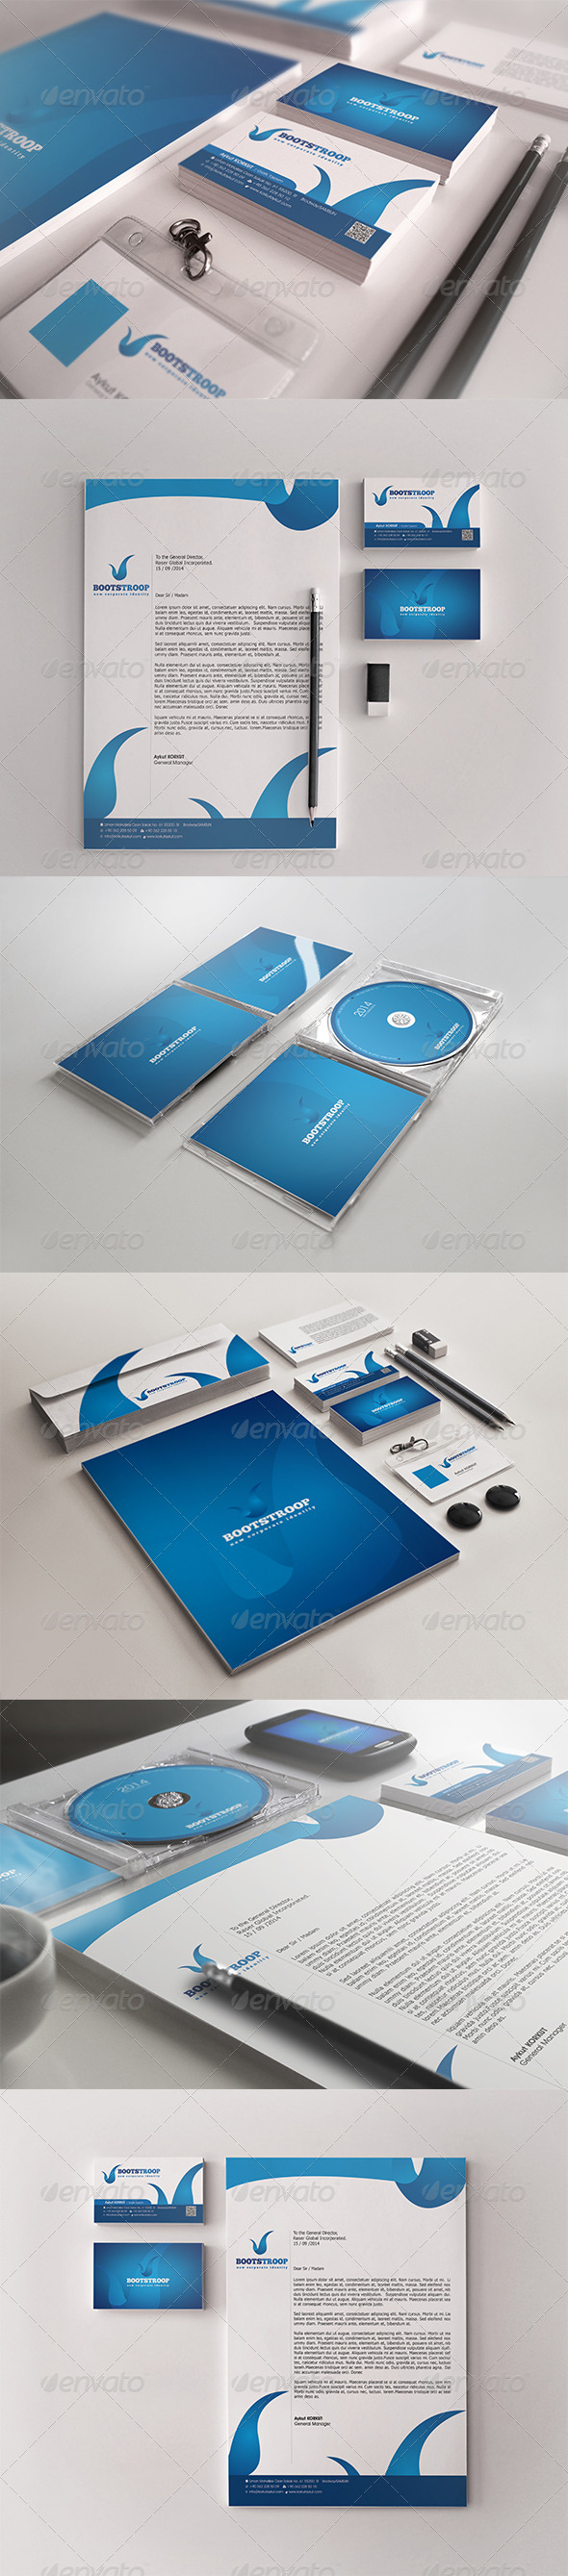 GraphicRiver BootStroop Corporate Identity 7830044